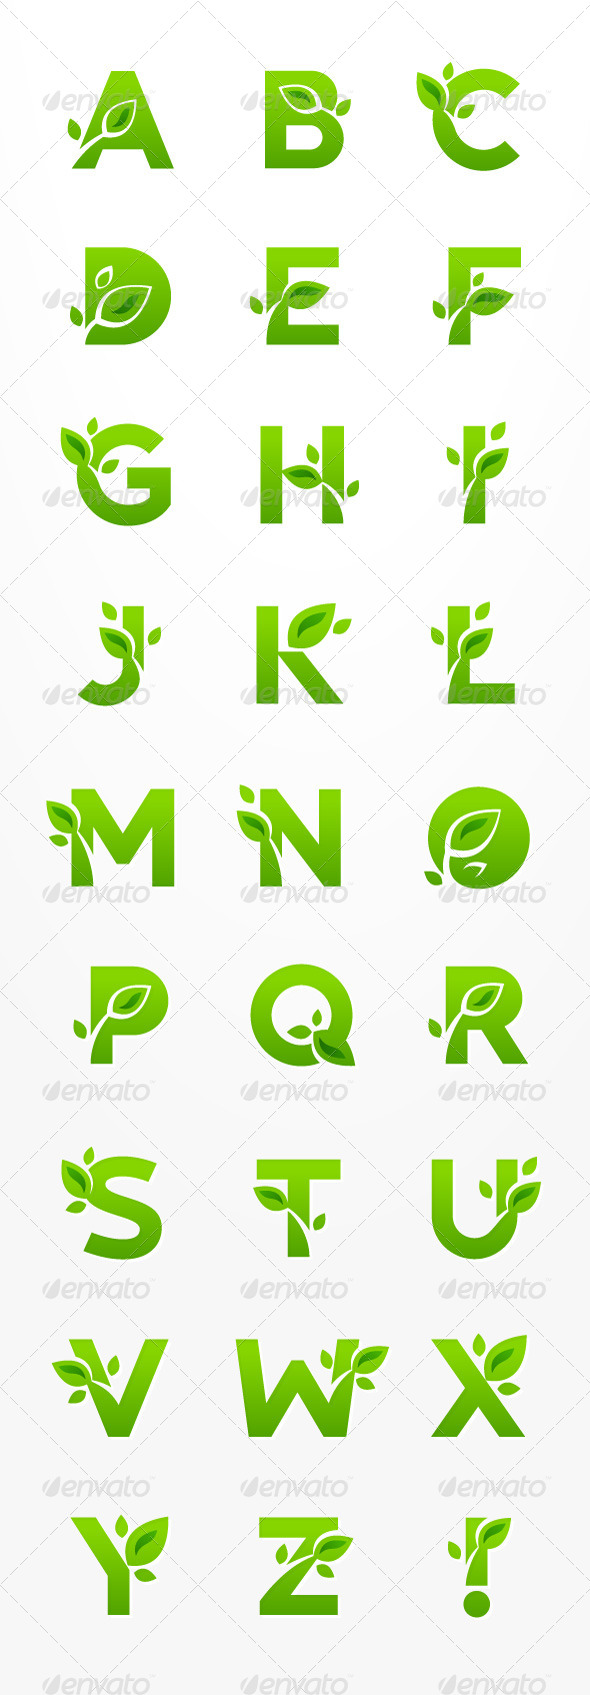 GraphicRiver Set of Green Eco Letters with Leaves 8391326